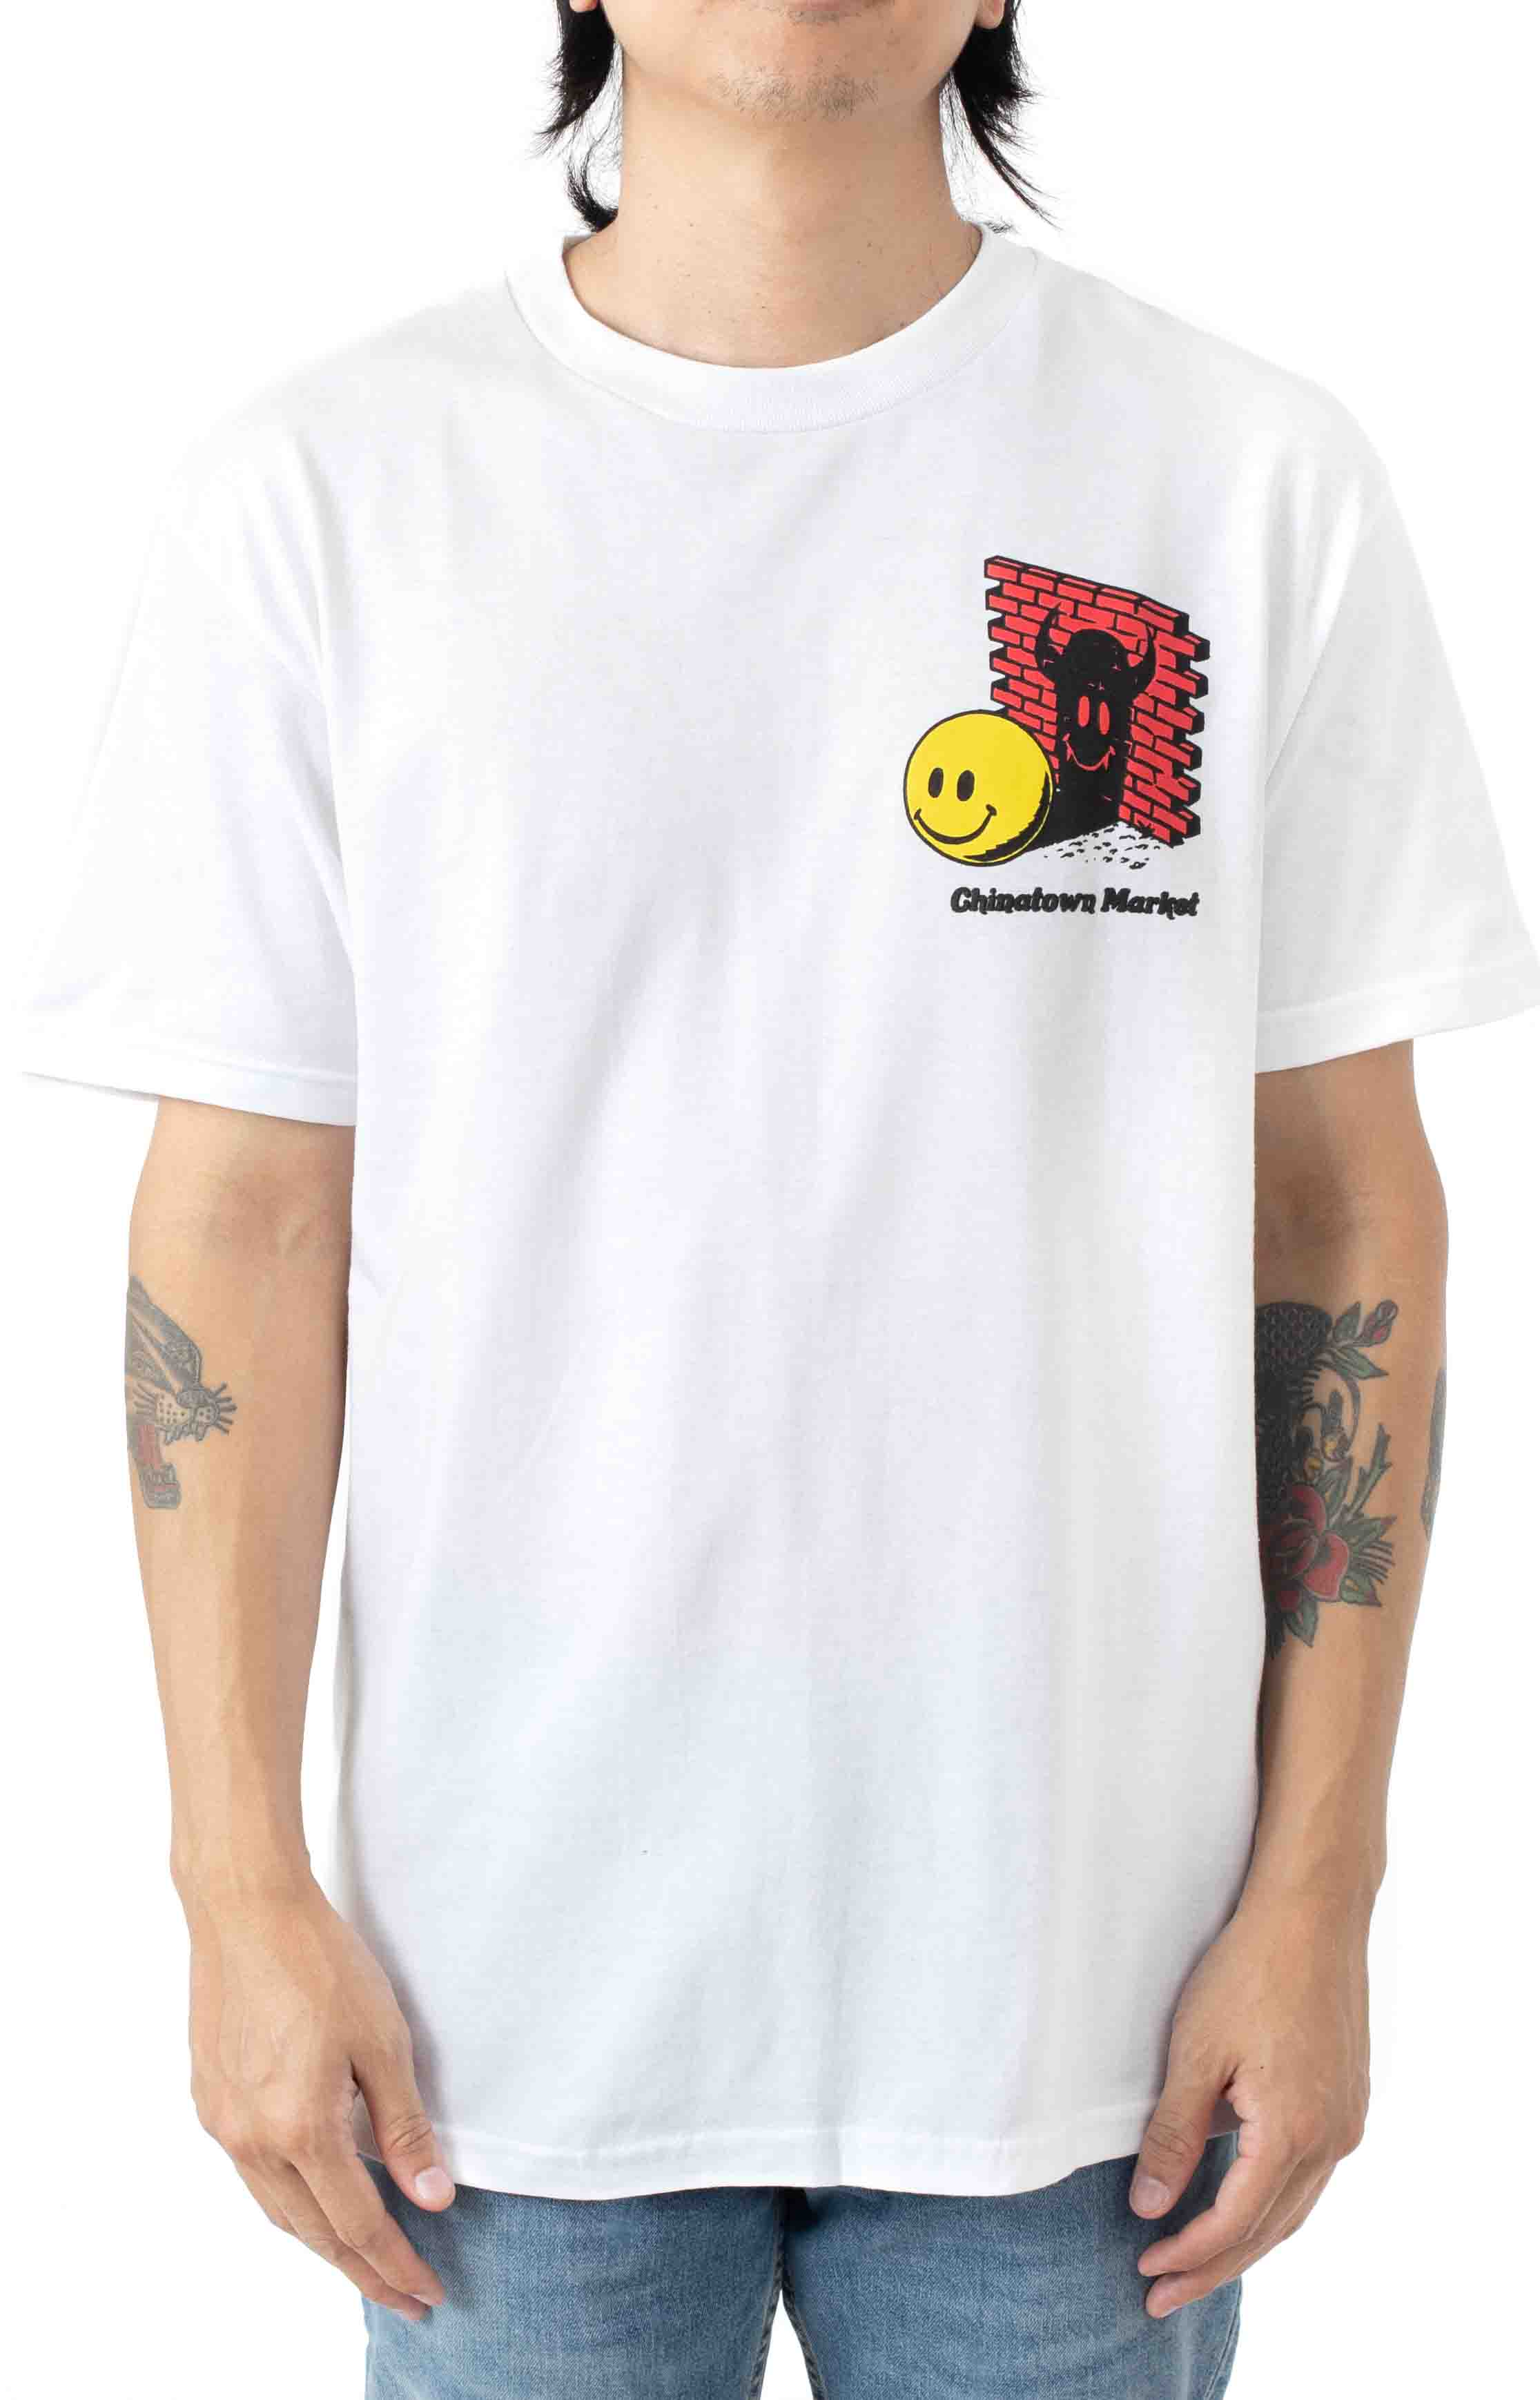 Smiley Find the Light T-Shirt - White  2